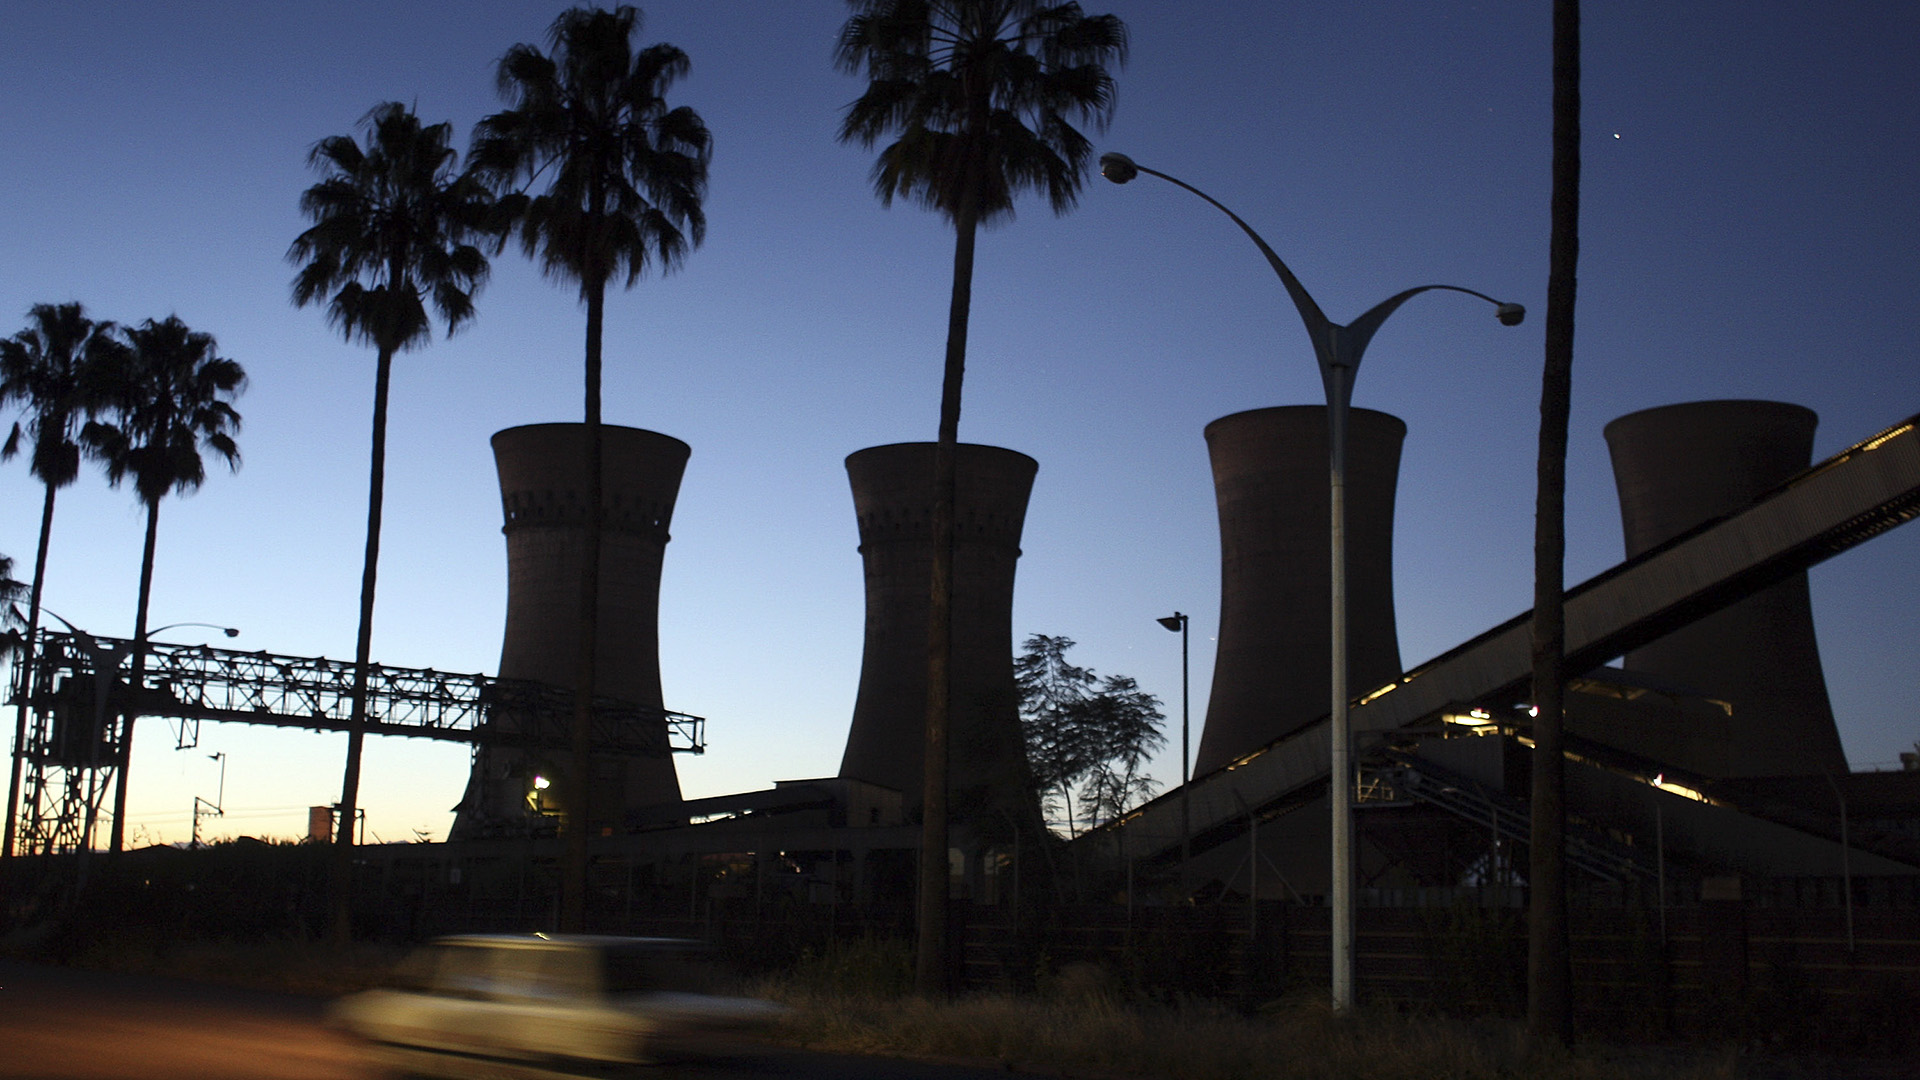 Zimbabwean Government, Activists, Face Off Over Chinese Coal Plant